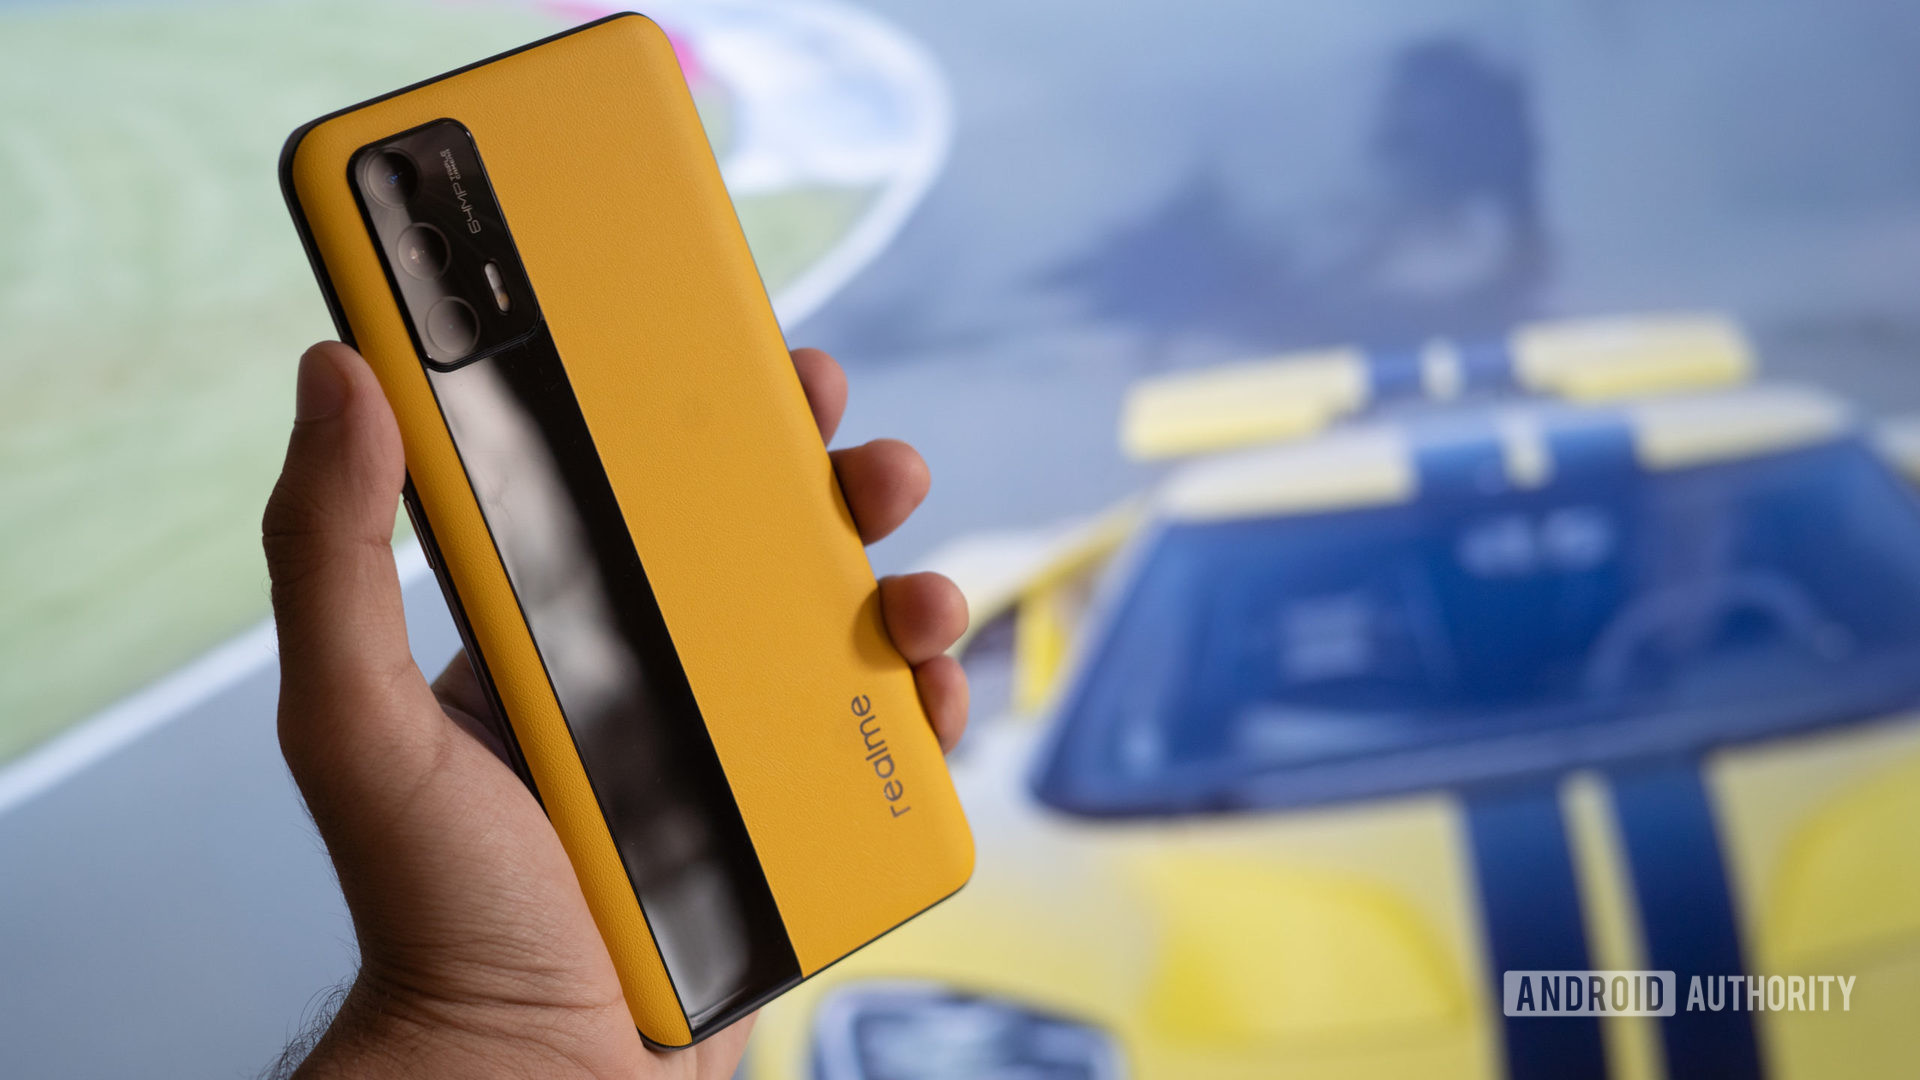 Realme GT in hand with race car behind it.